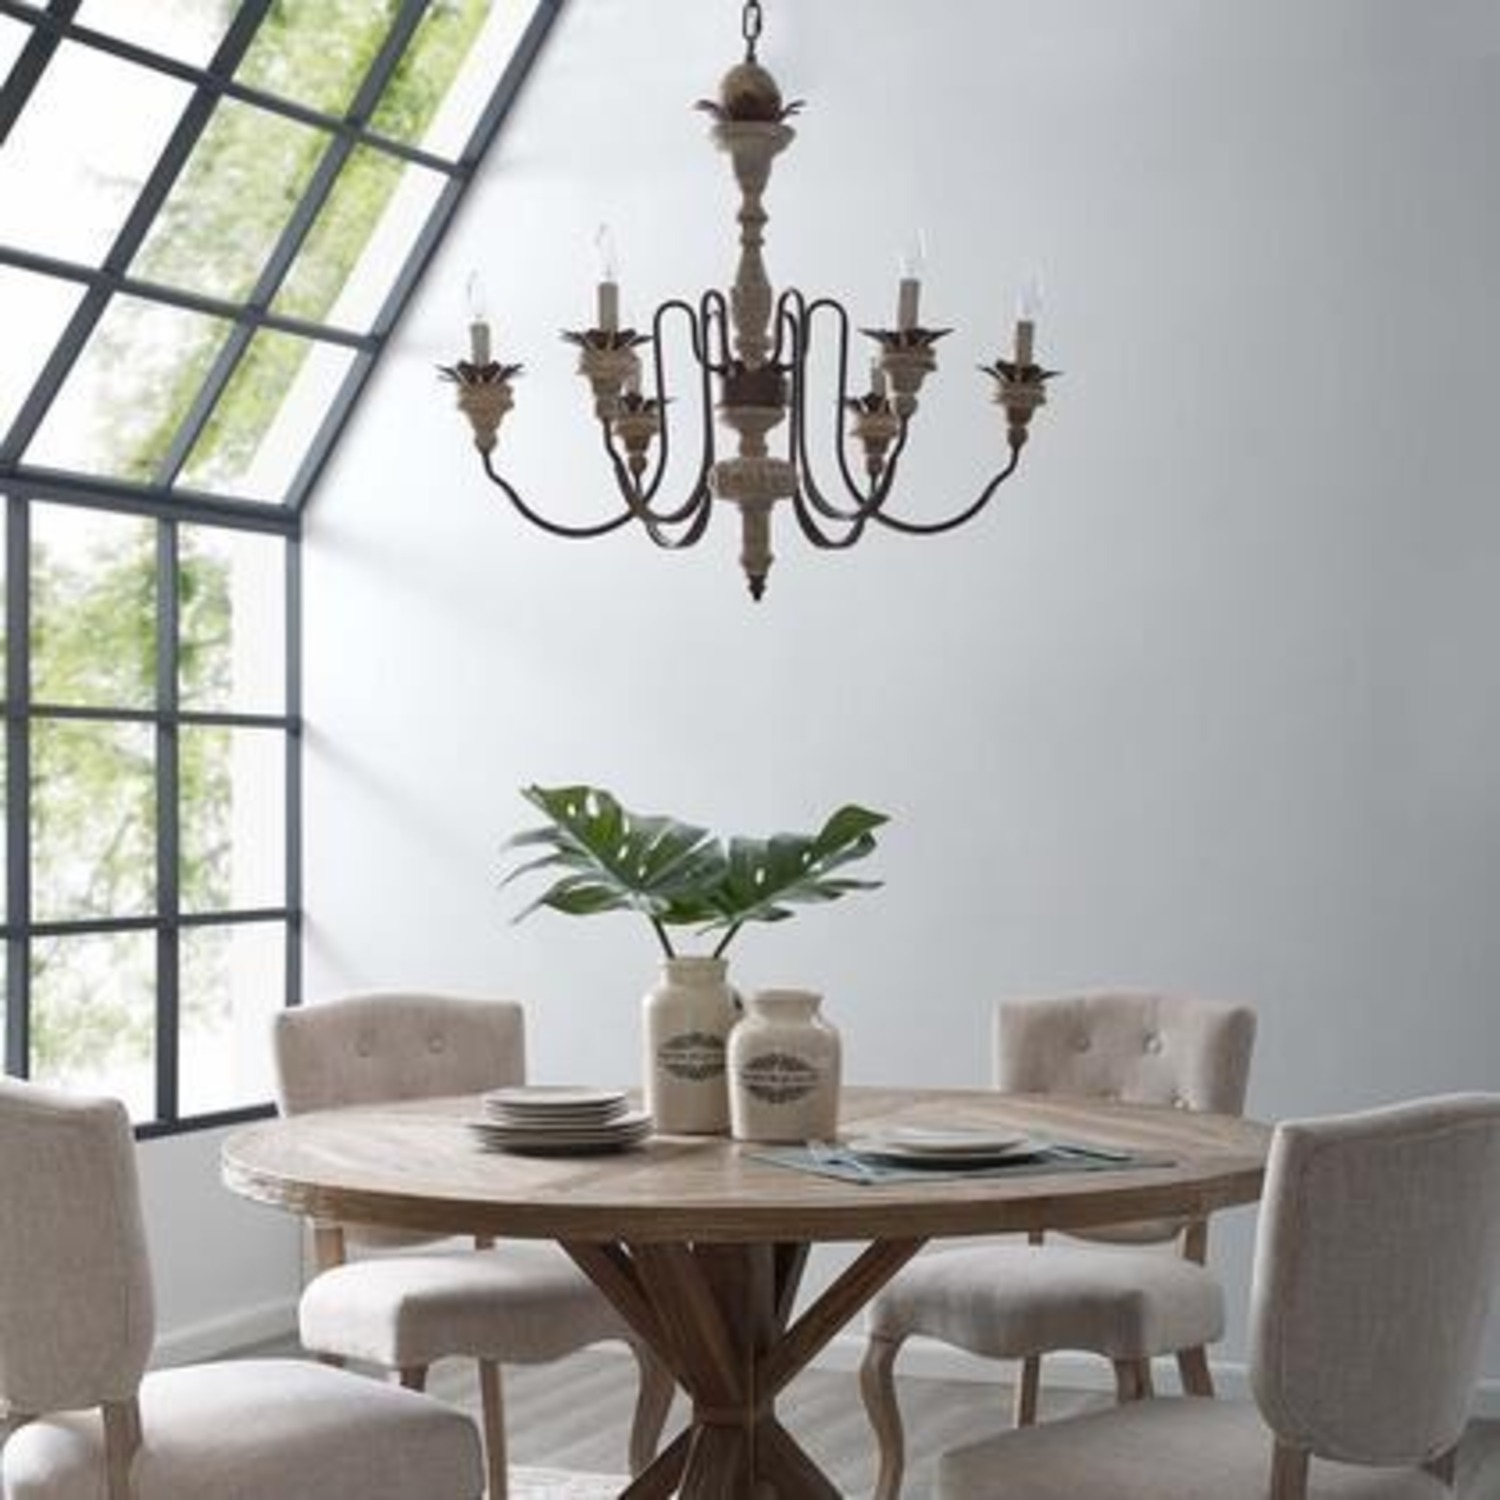 Vintage French Chandelier In Antique Metal Arms - image-3